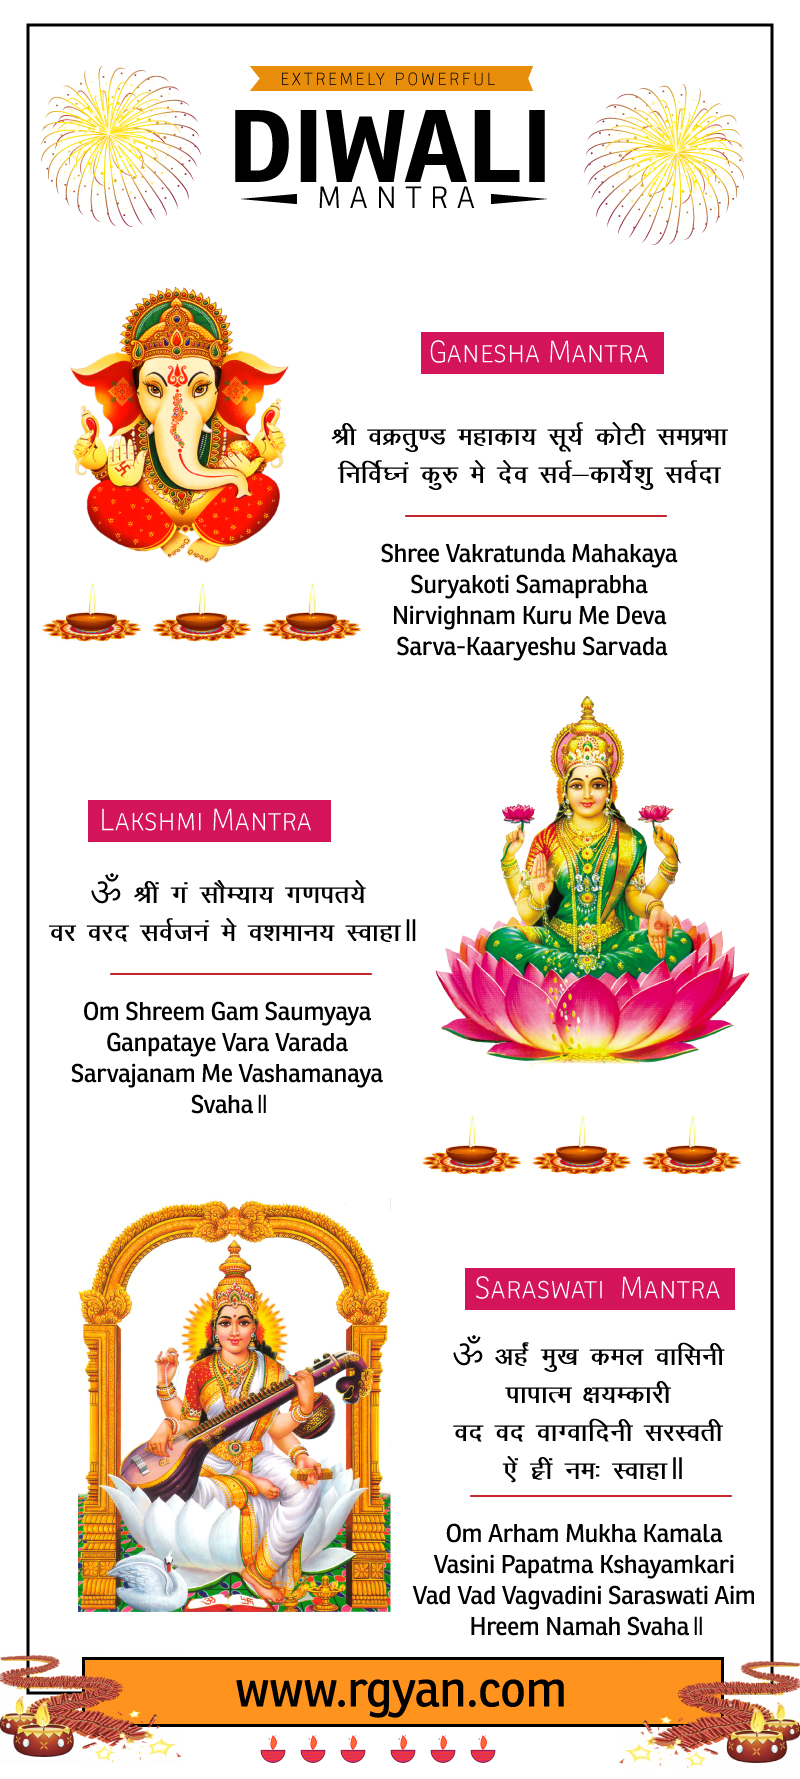 Diwali Mantra - Secret To Grab The Magical power This Diwali